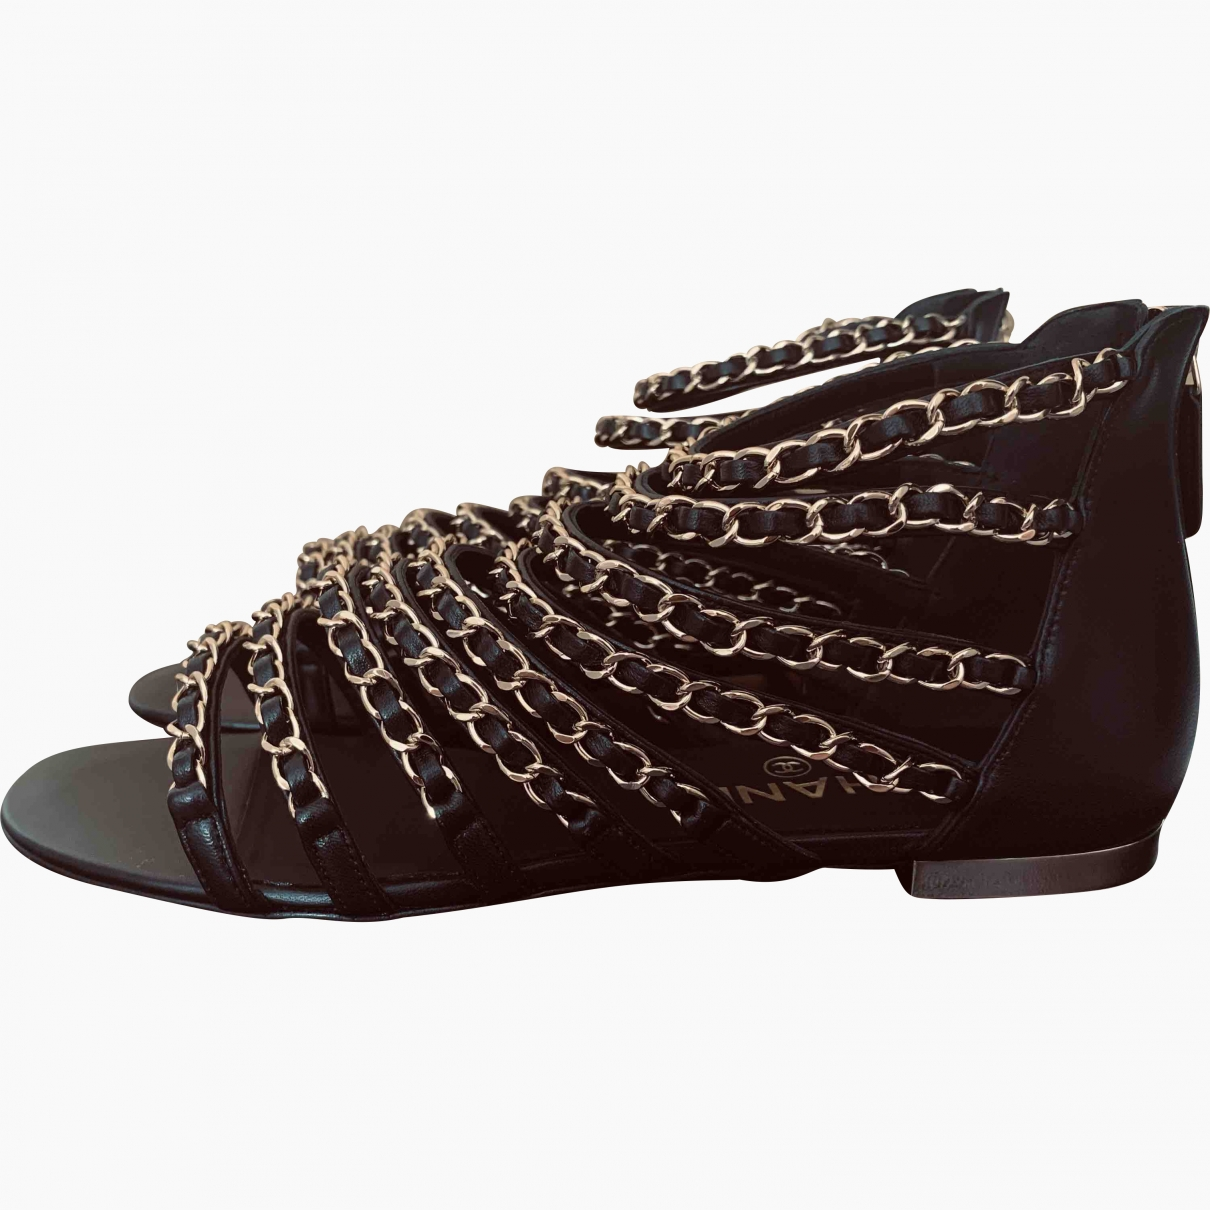 Chanel \N Black Leather Sandals for Women 36 EU